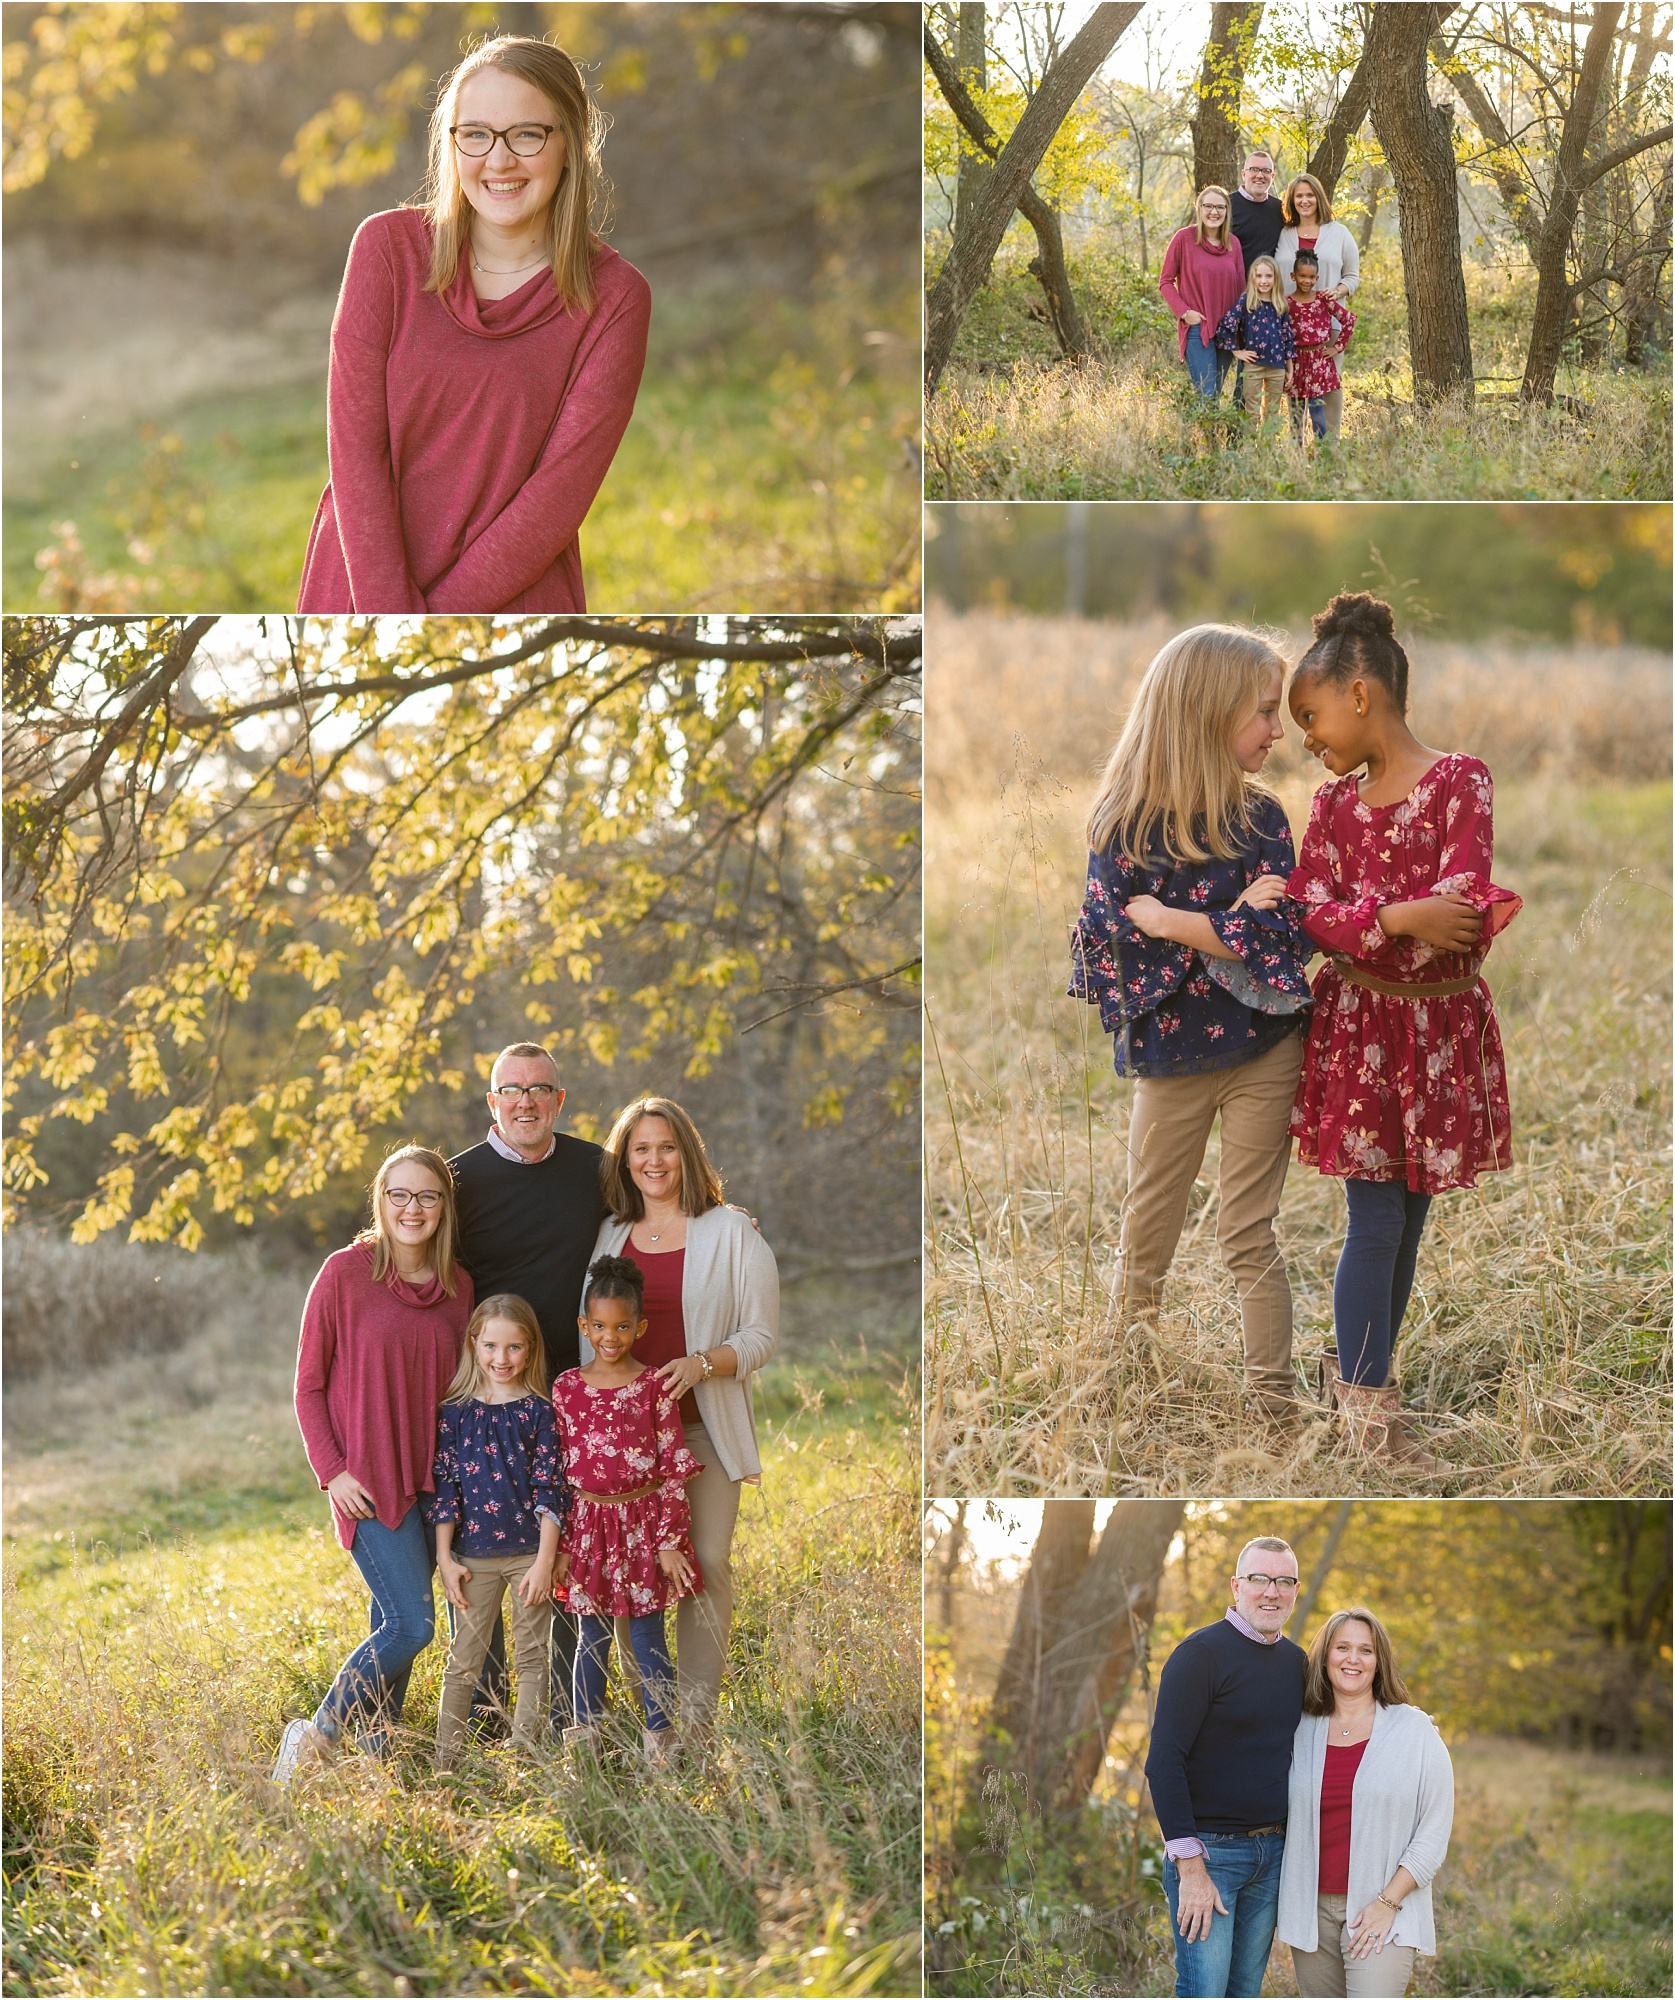 Nebraska-High-School-Senior-Family-Photographer-Kelsey-Nerud_0083.jpg